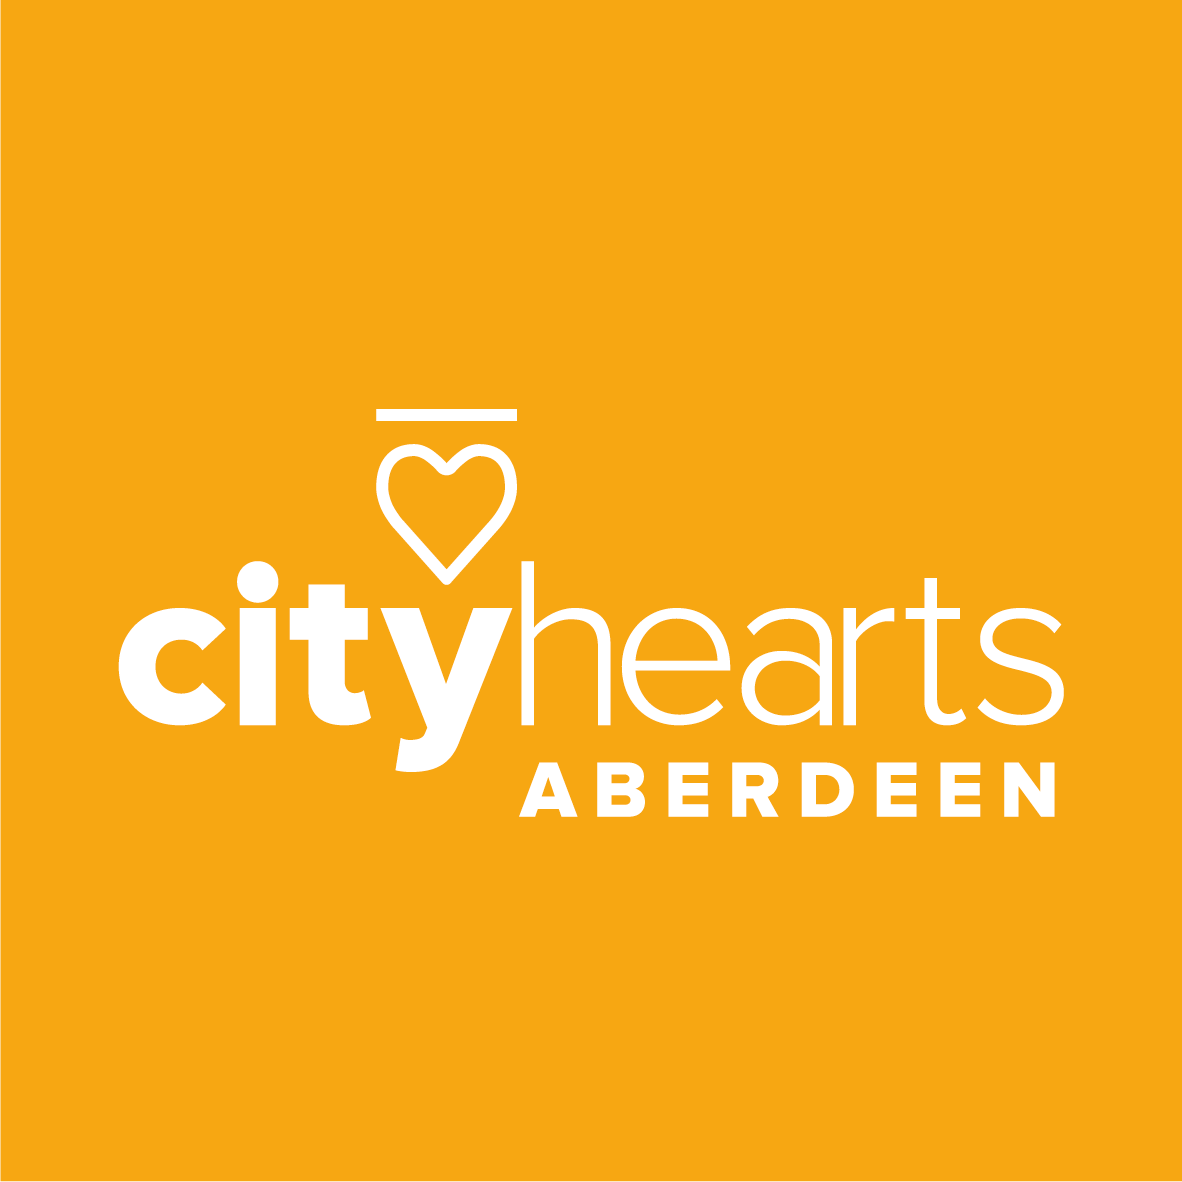 City Hearts Aberdeen